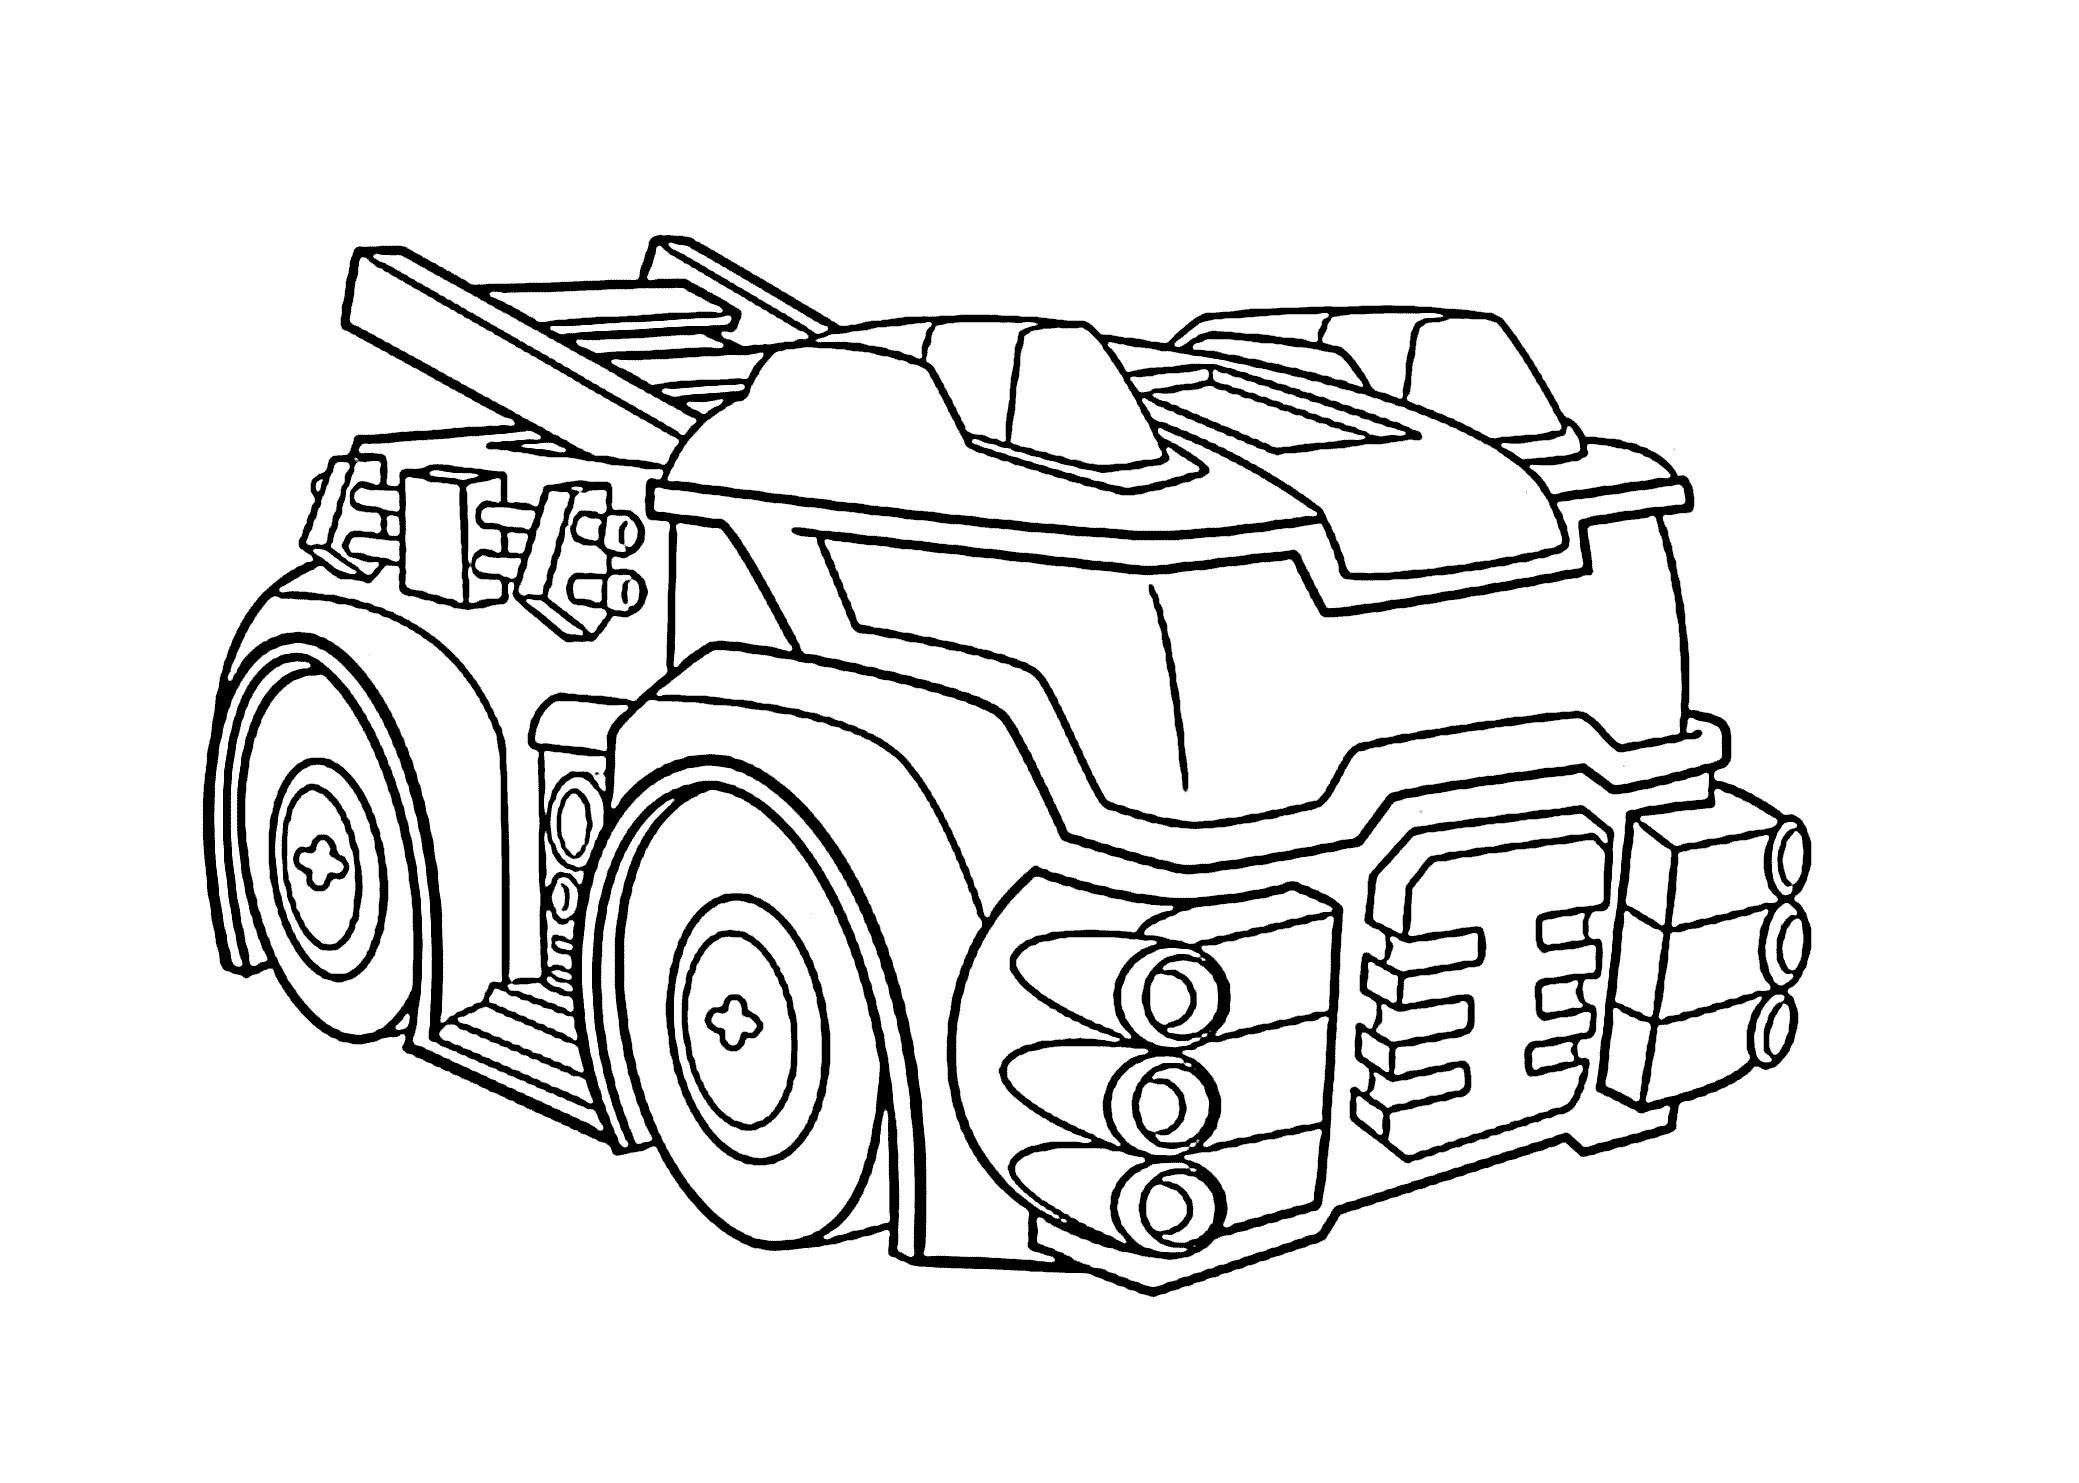 Rescue Bots Ausmalbilder Genial Free Printable Optimus Prime Coloring Pages New Rescue Bots Coloring Fotografieren